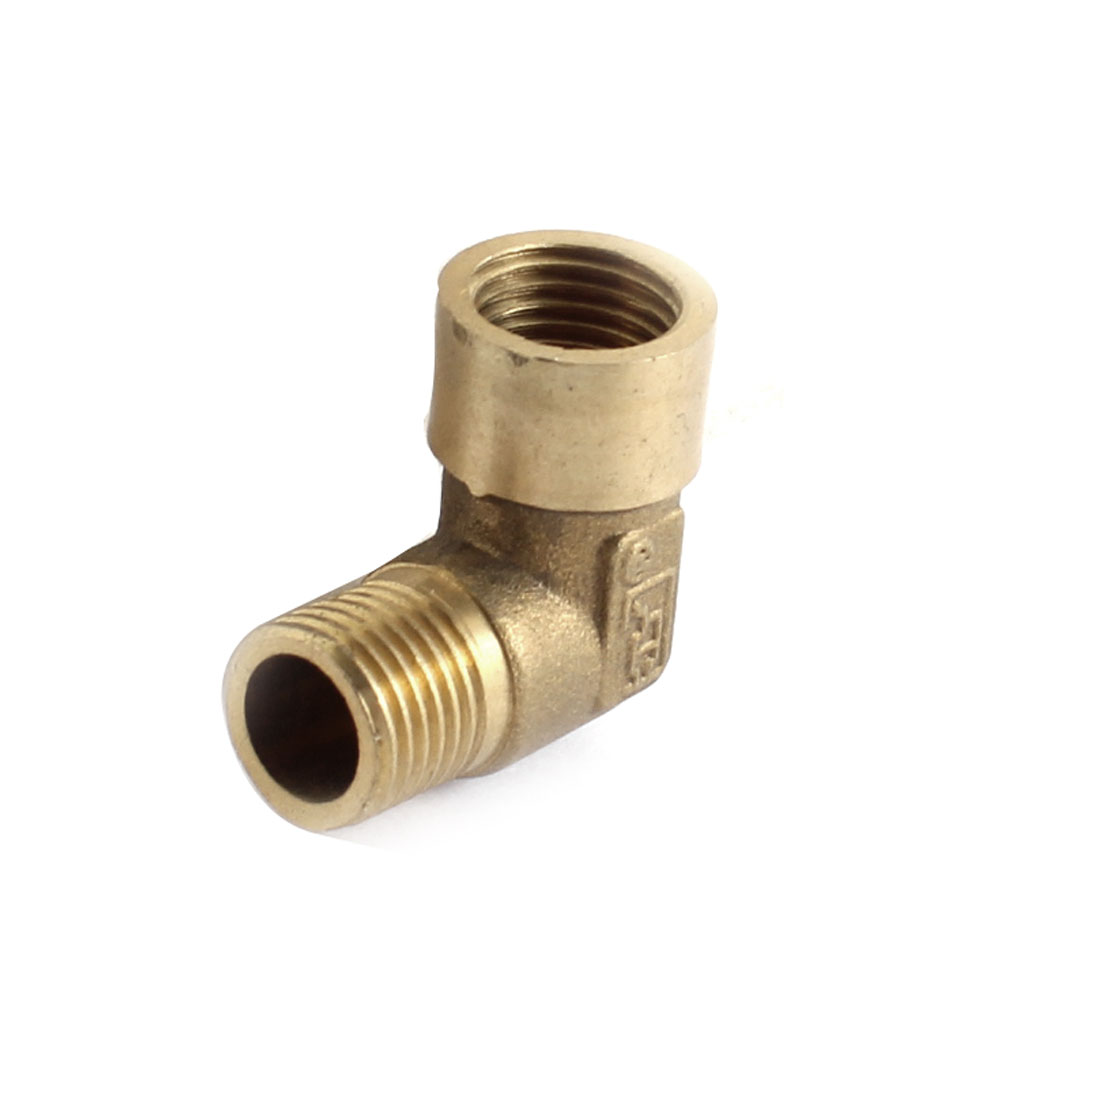 1/4PT x 1/4PT Male to Female Threaded Brass Right Angle Elbow Connector Adapter Joint for Water Fuel Pipe